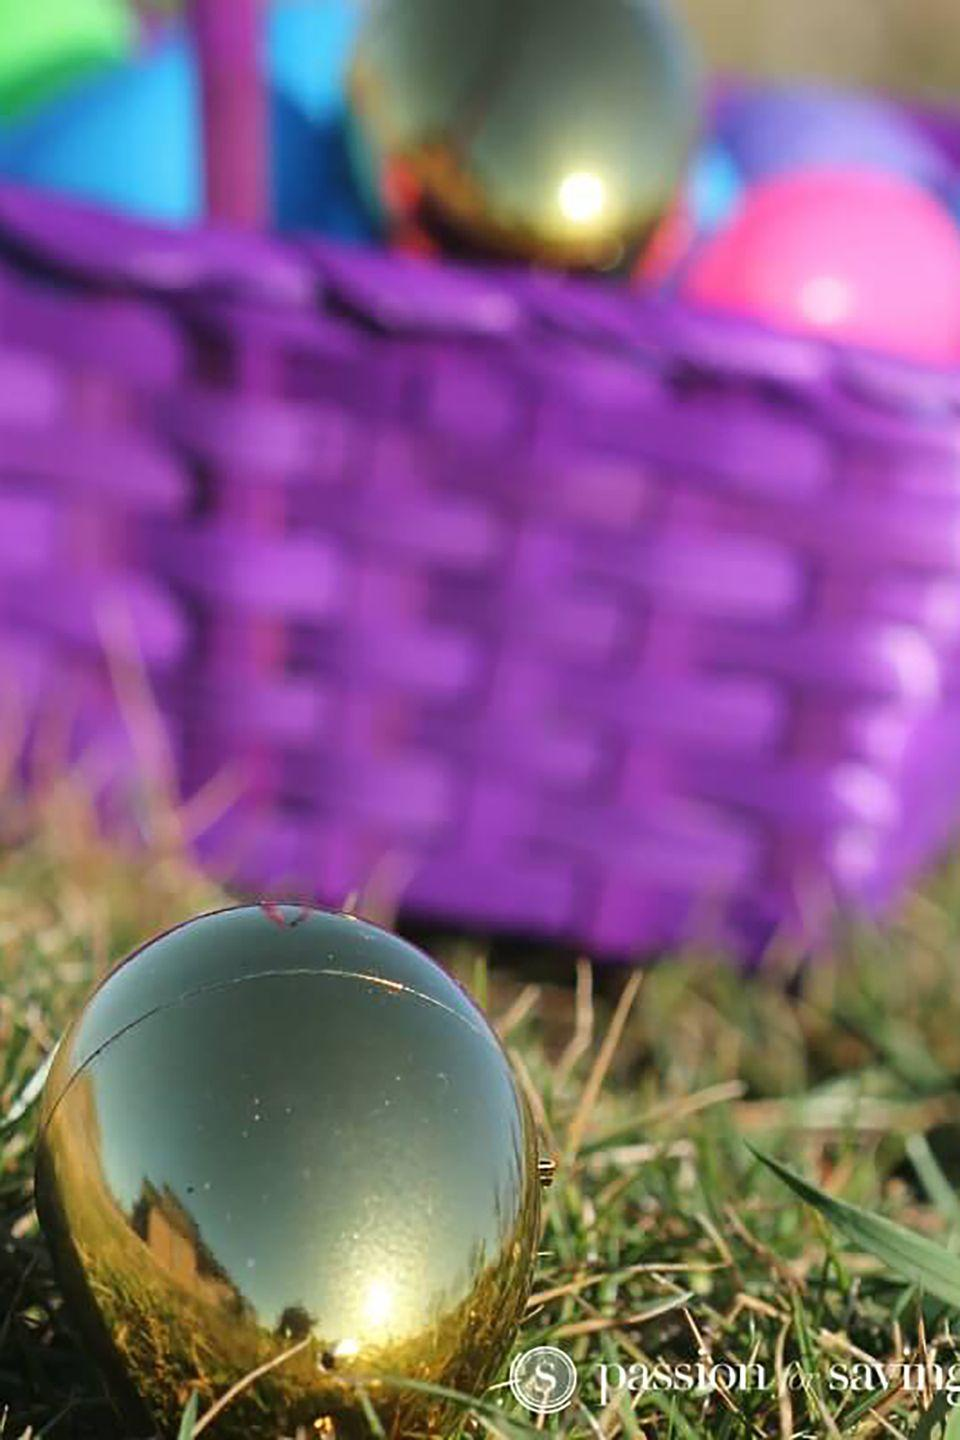 """<p>Hide one or two golden eggs, and make them extra difficult to find to challenge the most experienced hunters.</p><p><strong>Get the tutorial at <a href=""""http://www.passionforsavings.com/easter-egg-hunt-ideas-for-kids/"""" rel=""""nofollow noopener"""" target=""""_blank"""" data-ylk=""""slk:Passion For Savings"""" class=""""link rapid-noclick-resp"""">Passion For Savings</a>.</strong></p><p><strong><a class=""""link rapid-noclick-resp"""" href=""""https://www.amazon.com/Fun-Express-Golden-Metallic-Easter/dp/B004WOZ046/ref=sr_1_6?dchild=1&keywords=gold+eggs&qid=1614113555&sr=8-6&tag=syn-yahoo-20&ascsubtag=%5Bartid%7C10050.g.4083%5Bsrc%7Cyahoo-us"""" rel=""""nofollow noopener"""" target=""""_blank"""" data-ylk=""""slk:SHOP GOLD EGGS"""">SHOP GOLD EGGS</a><br></strong></p>"""